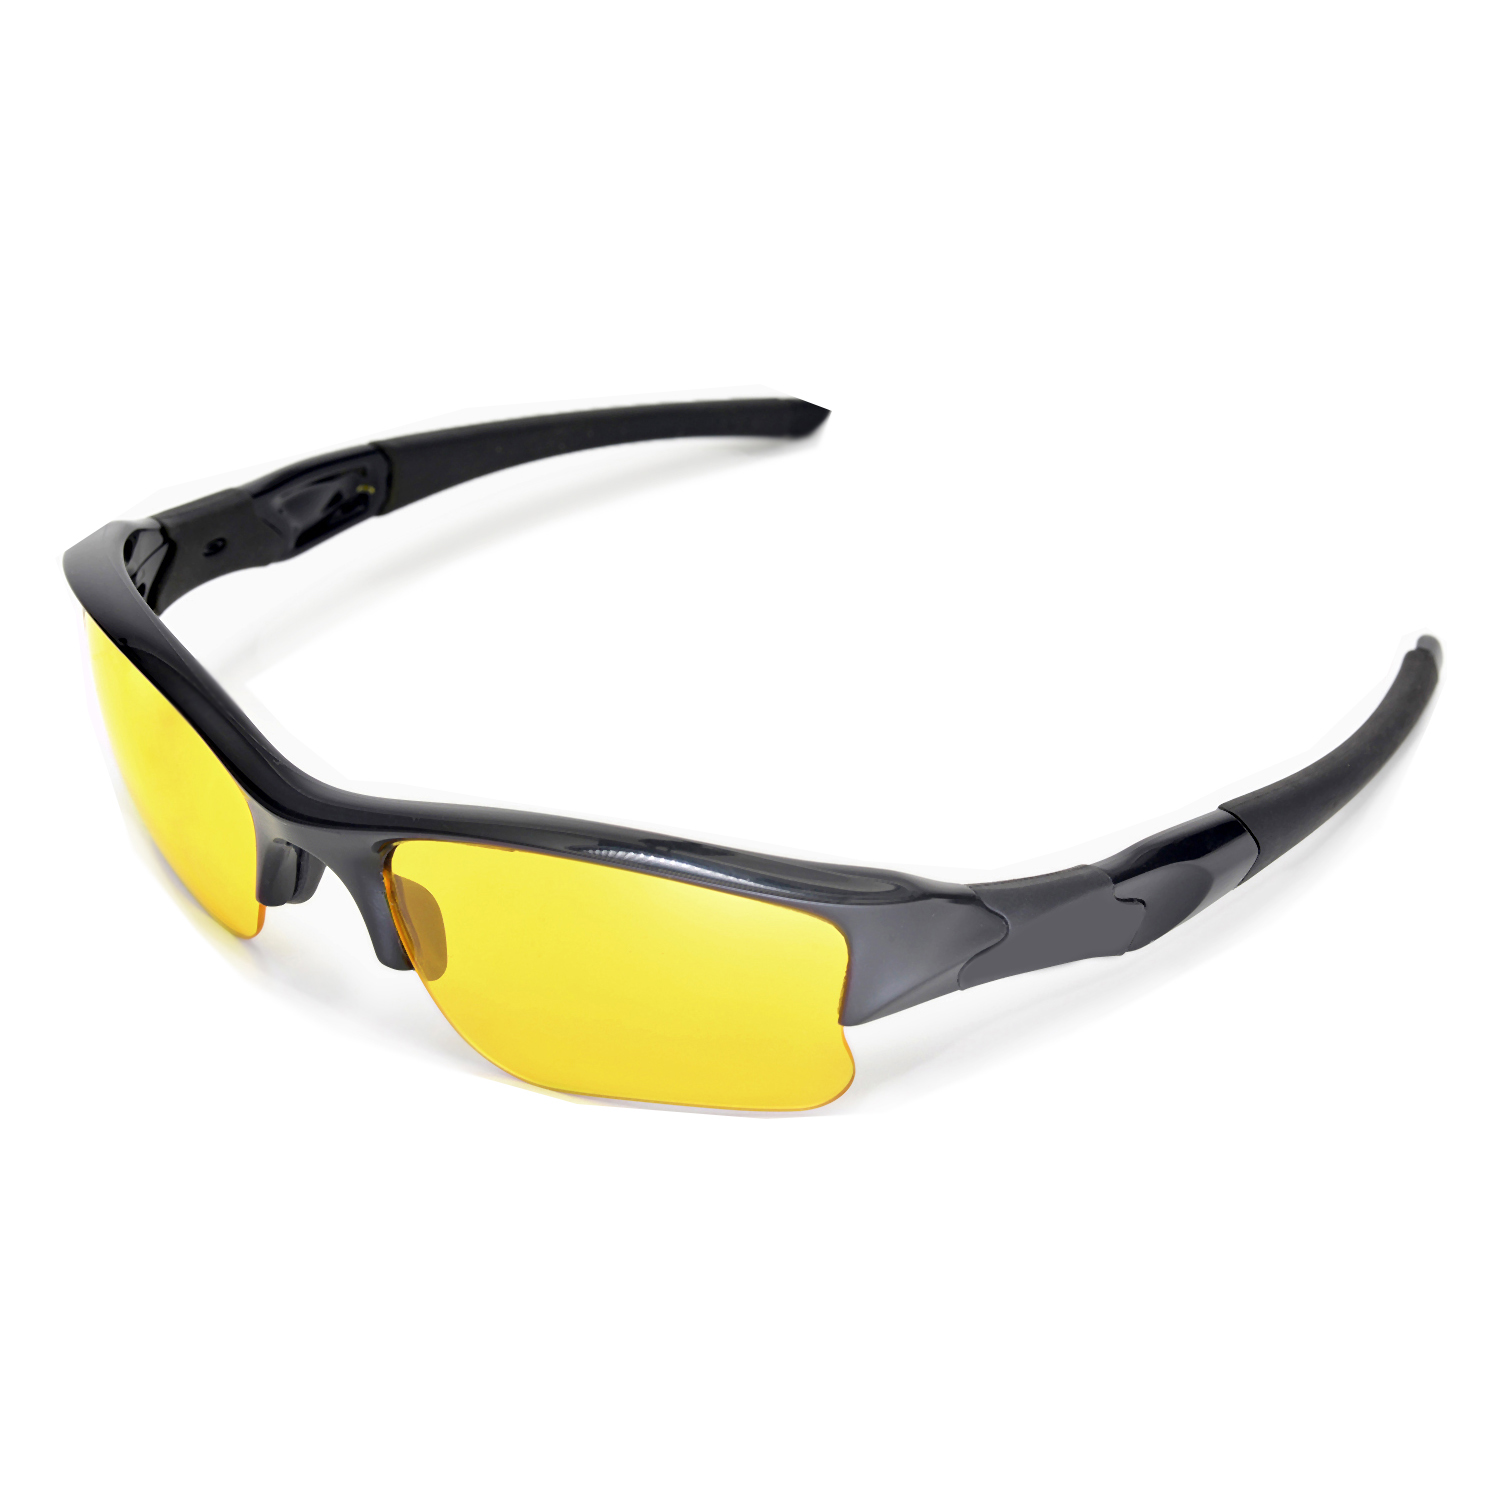 28e70f2226 Details about New Walleva Yellow Replacement Lenses For Oakley Flak Jacket  XLJ Sunglasses